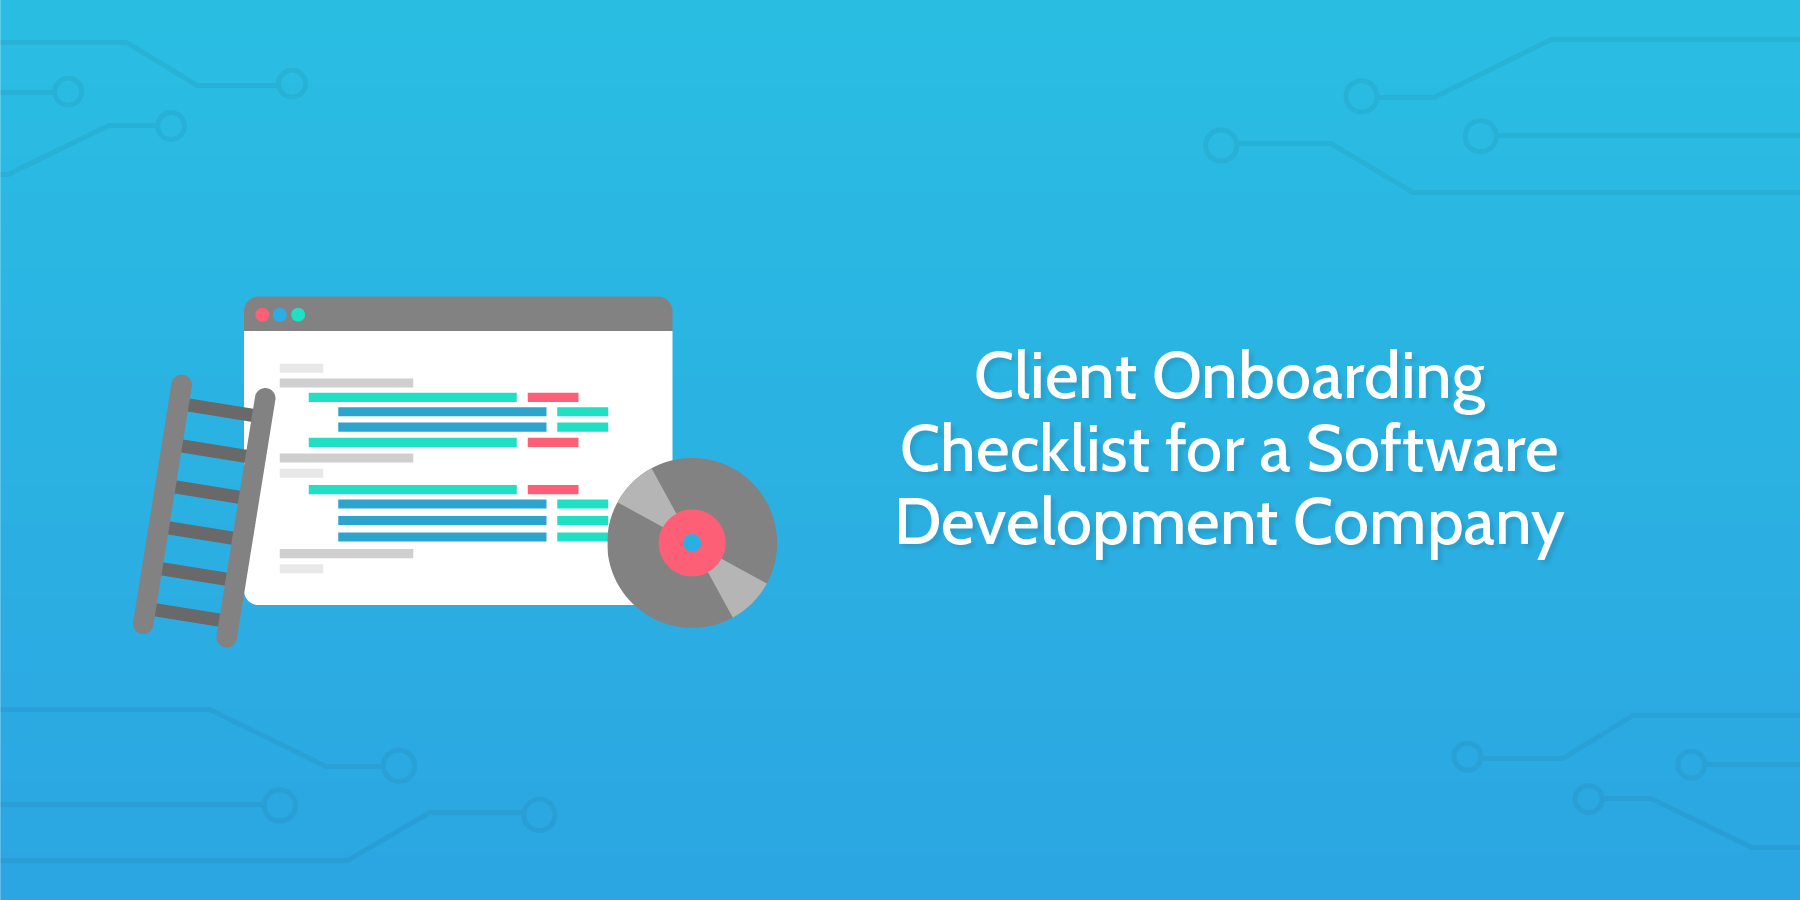 client onboarding checklist for a software development company